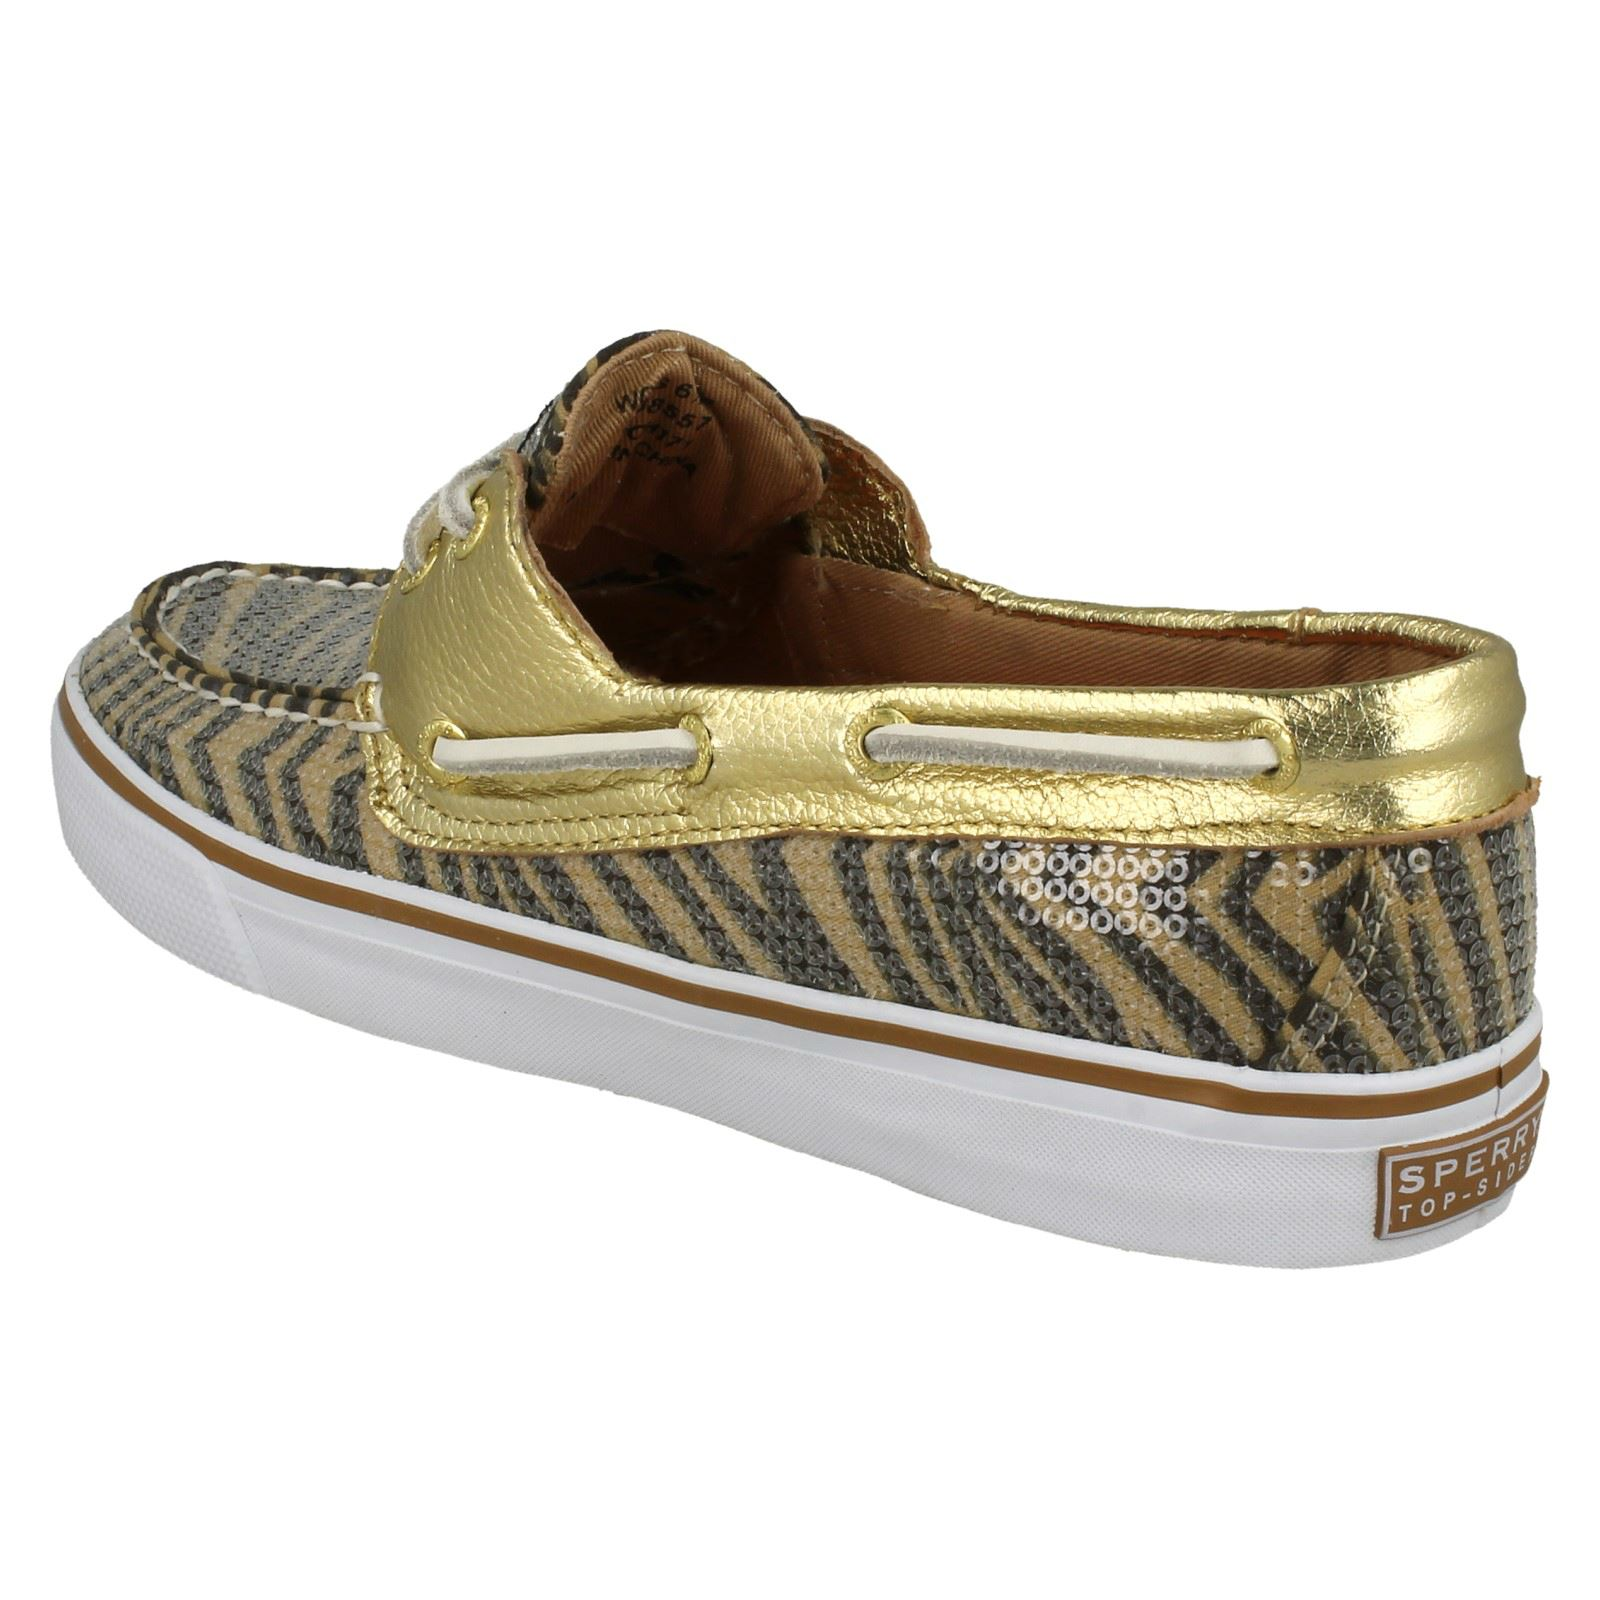 Ladies Sperry Top-Sider Deck Style Shoes /'Bahama/'